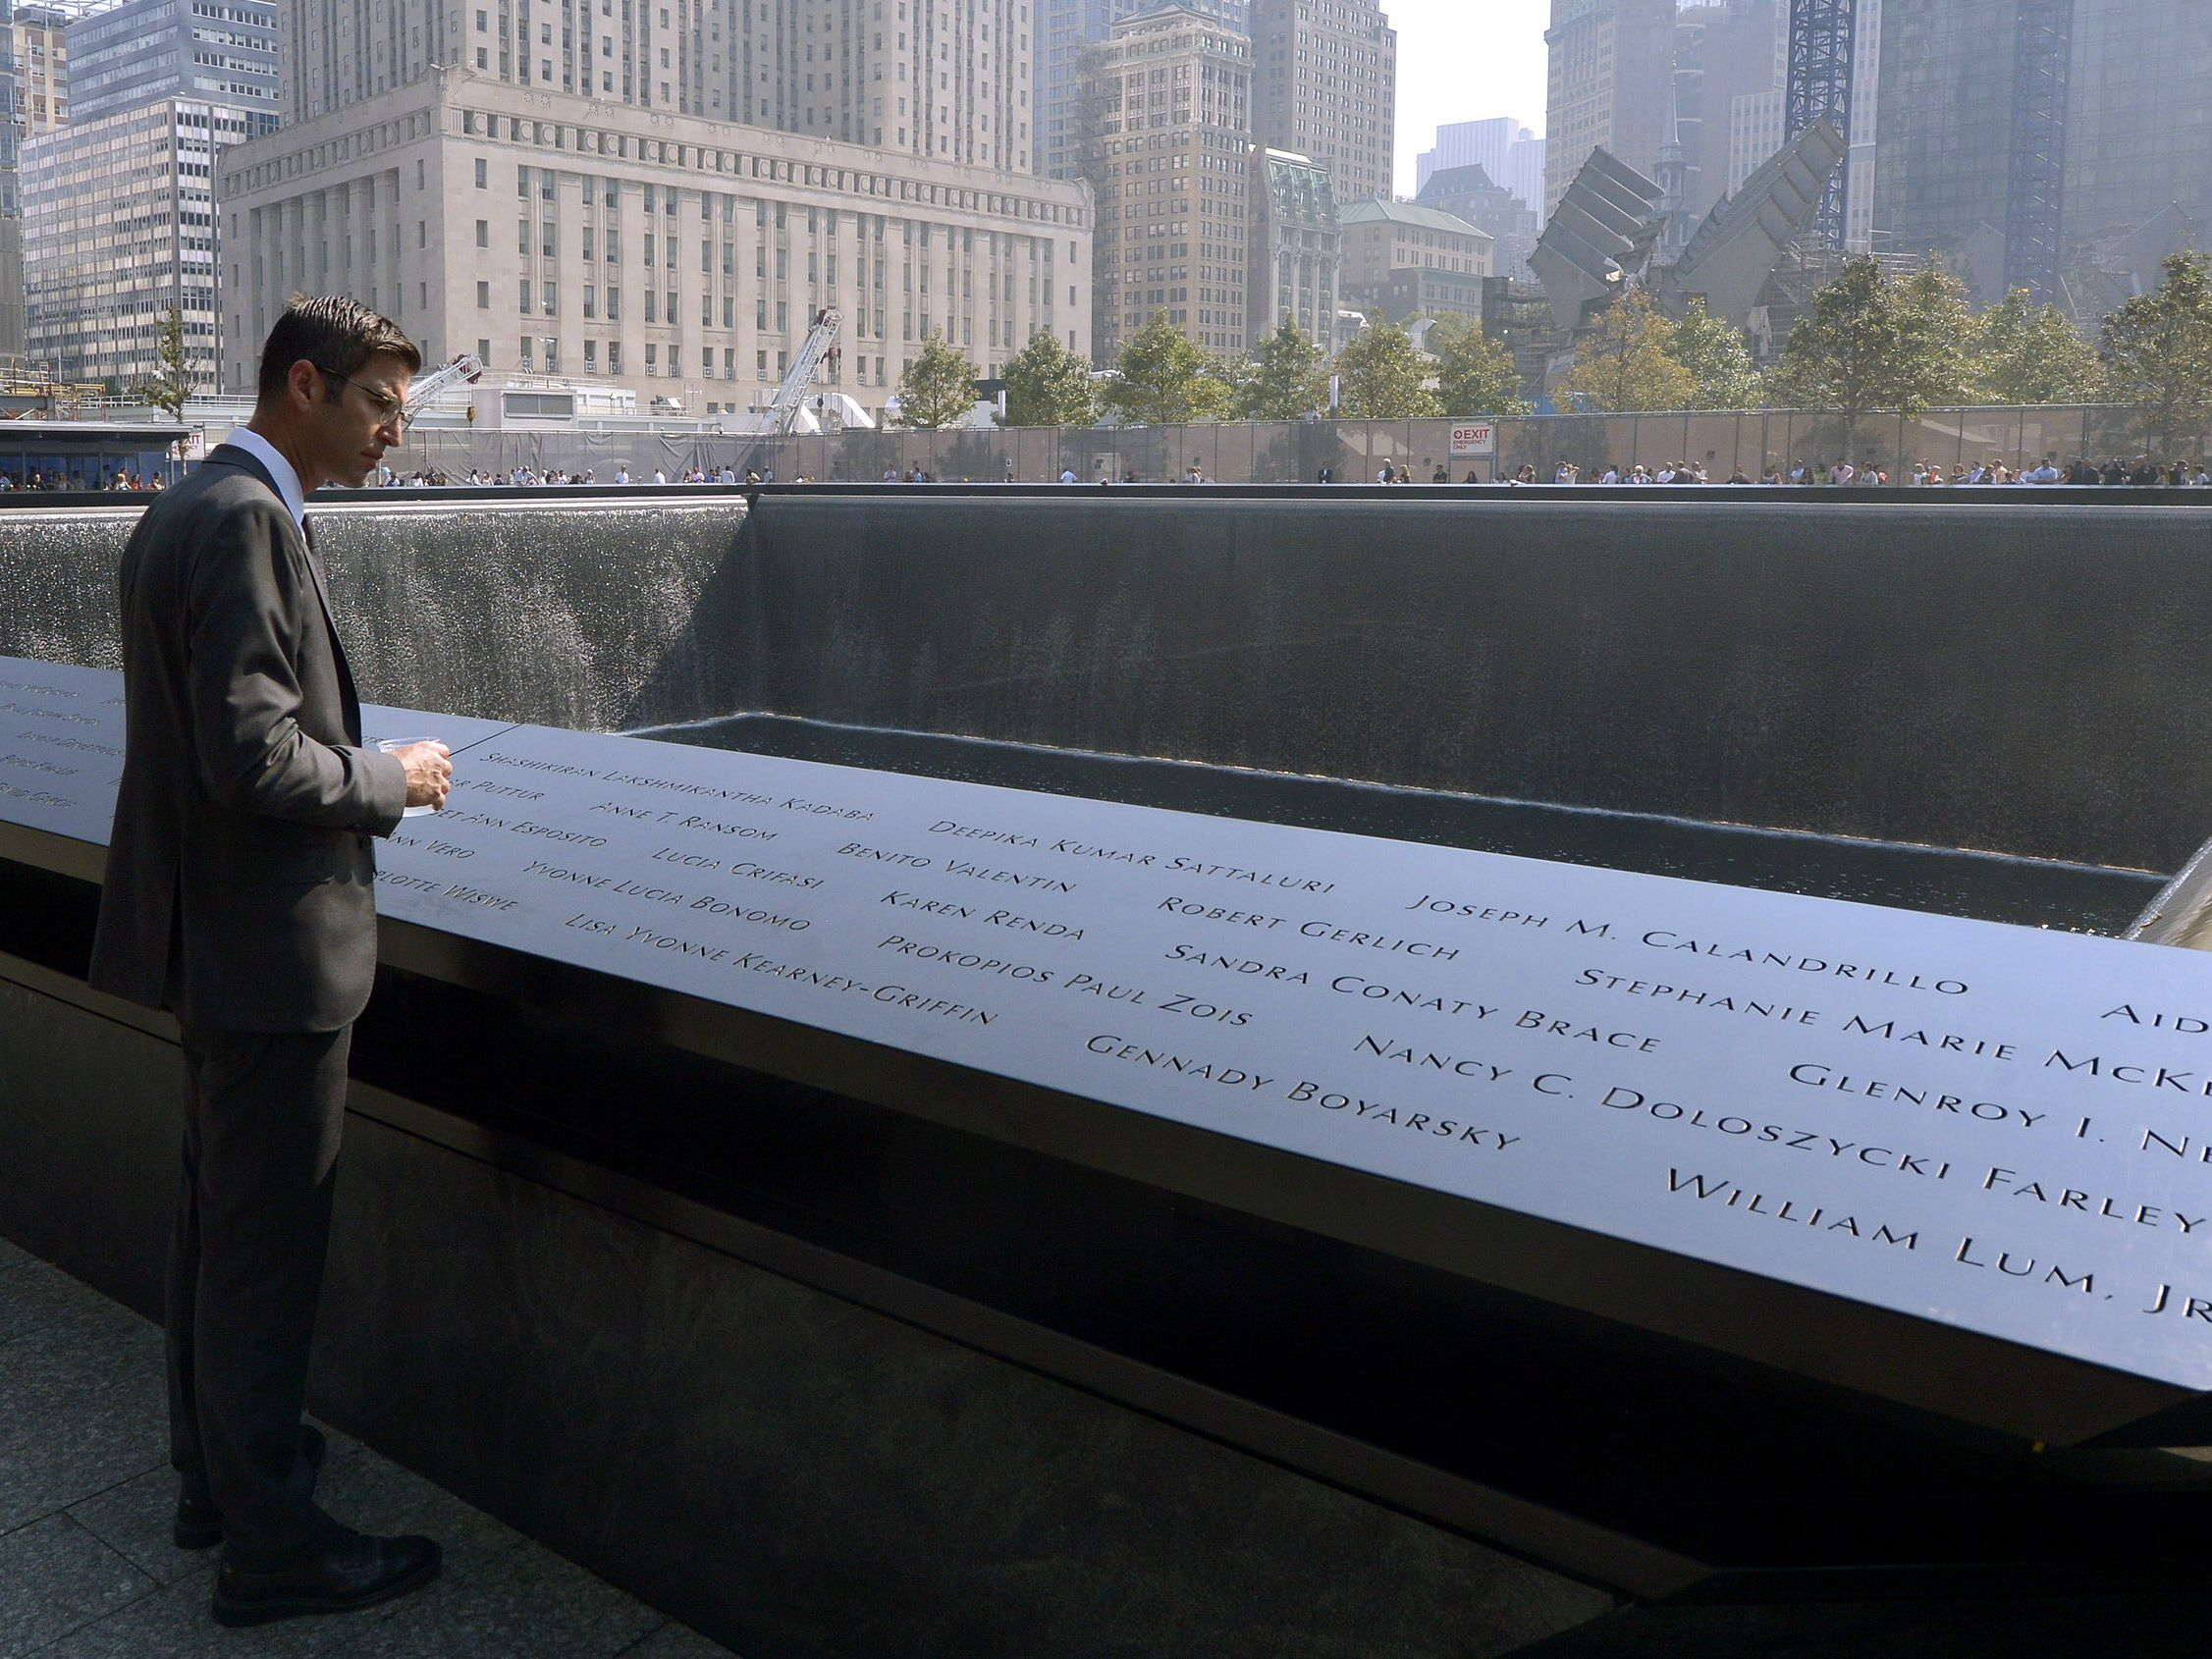 Arad S Vision For The National 9 11 Memorial